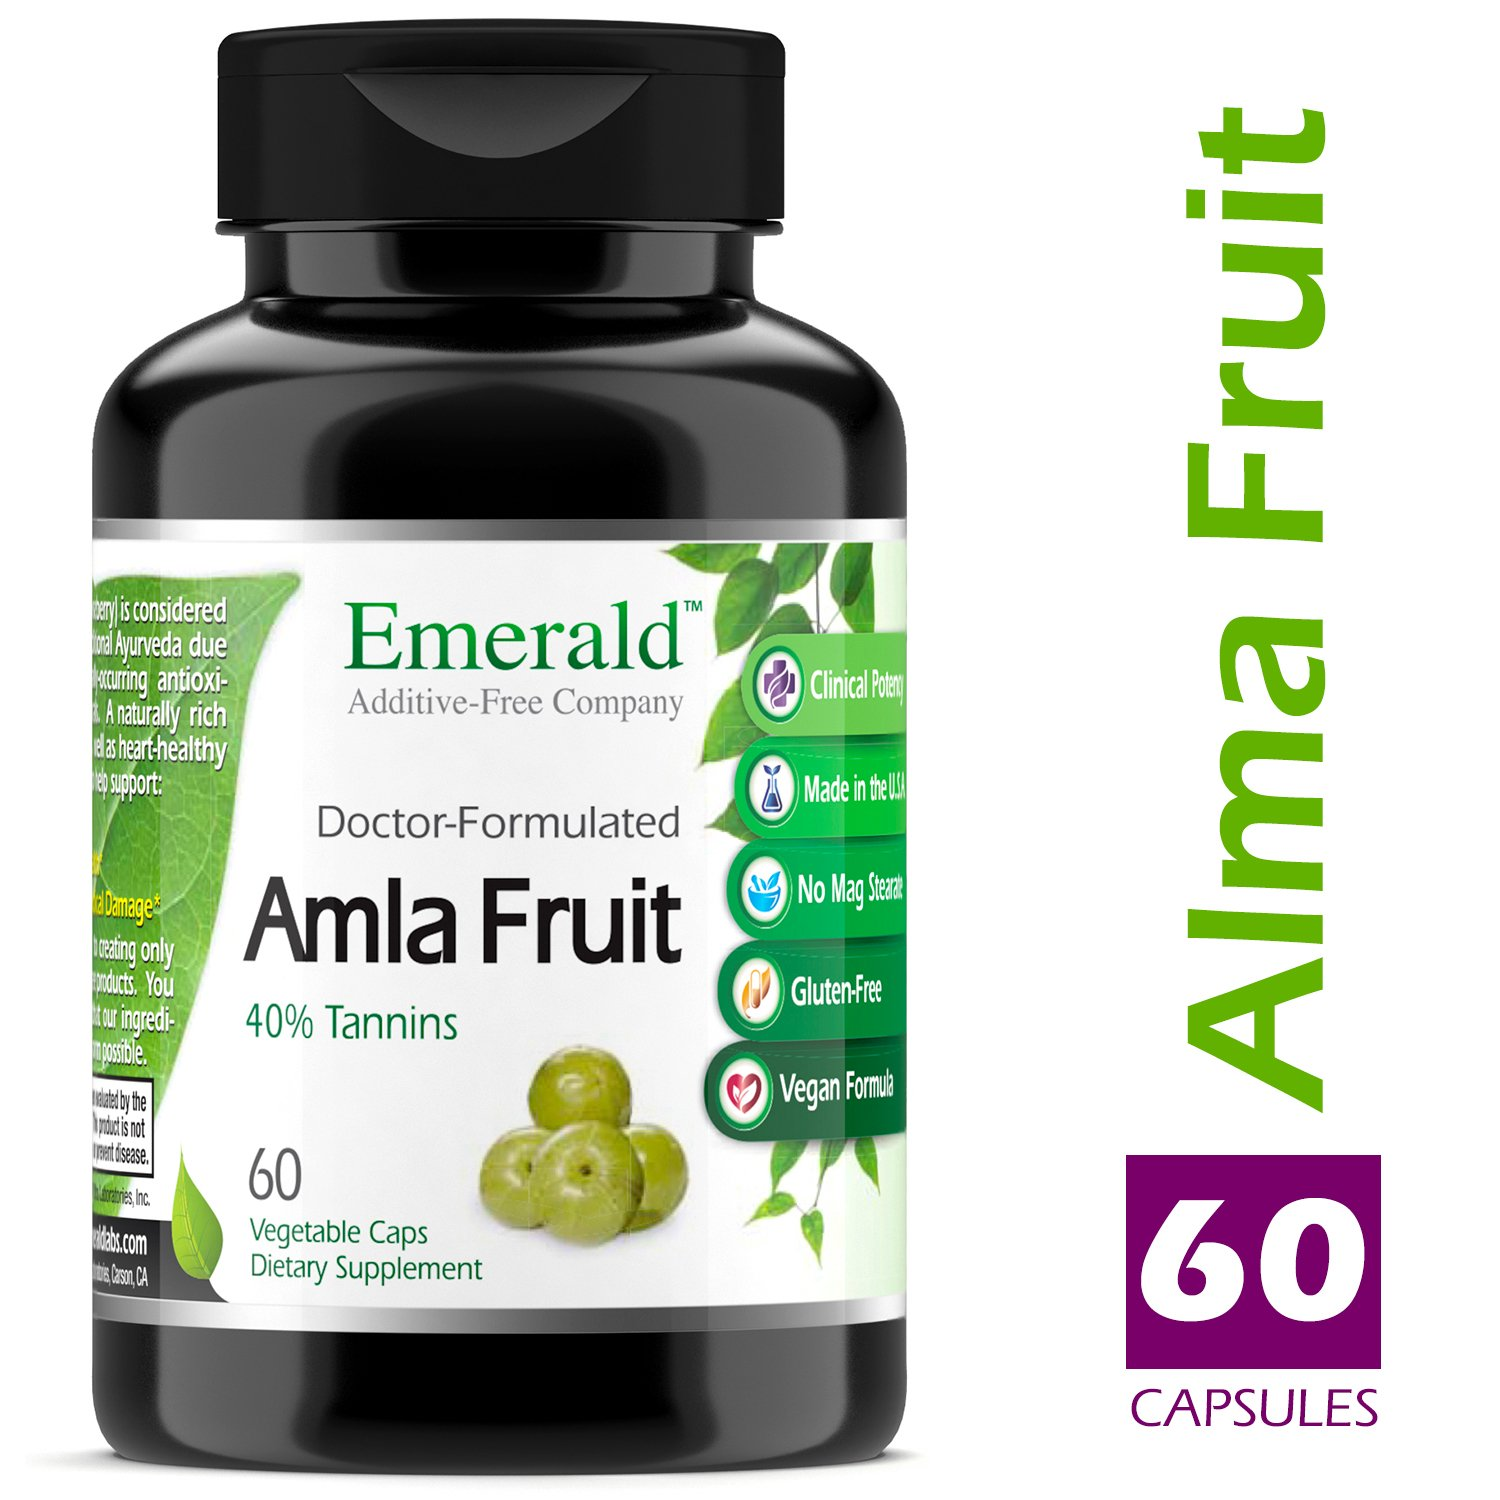 Amazon.com: Amla Fruit - Natural Source Vitamin C, Powerful Immune Support, Digestive Support, Sore Throat Relief, & Anti-Aging - Emerald Laboratories ...